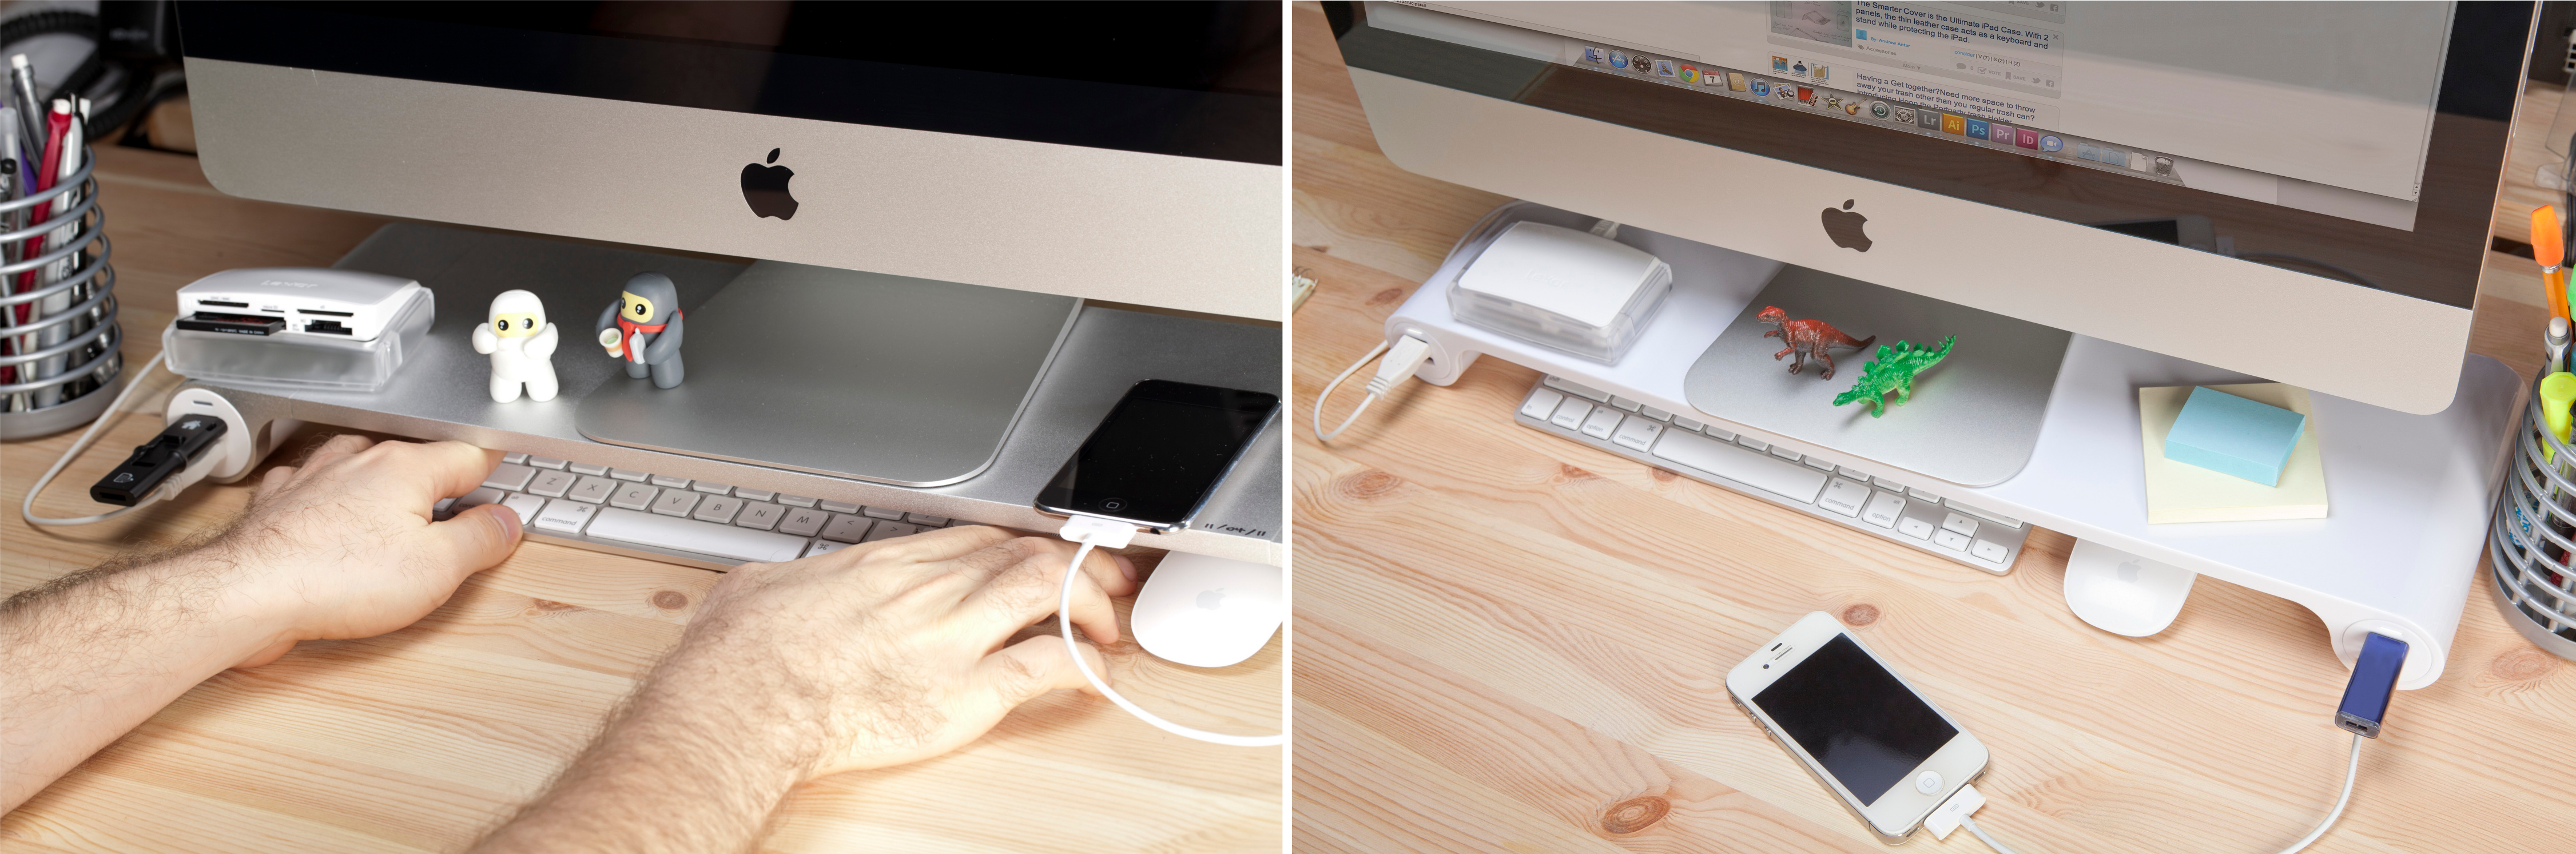 pen phone me lead ipad lean tablet iphone office organiser desk holder cutout pencil j tidy white itm